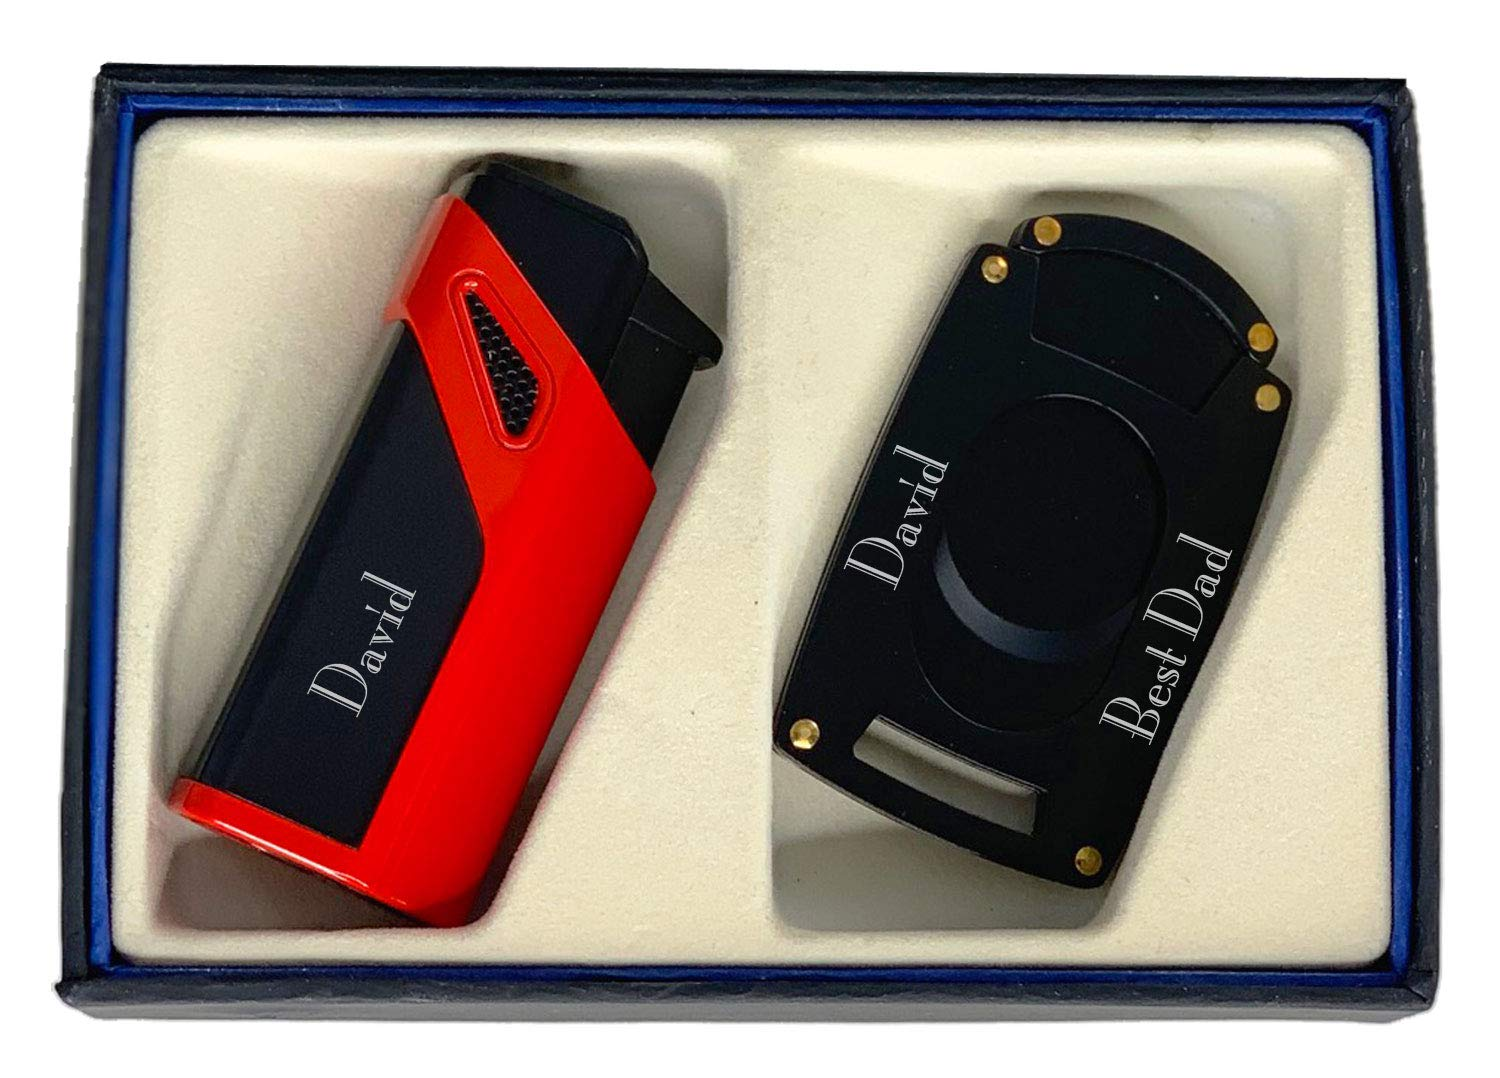 Personalized Visol Alpha Cigar Lighter and Cutter Gift Set - Red with Free Laser Engraving